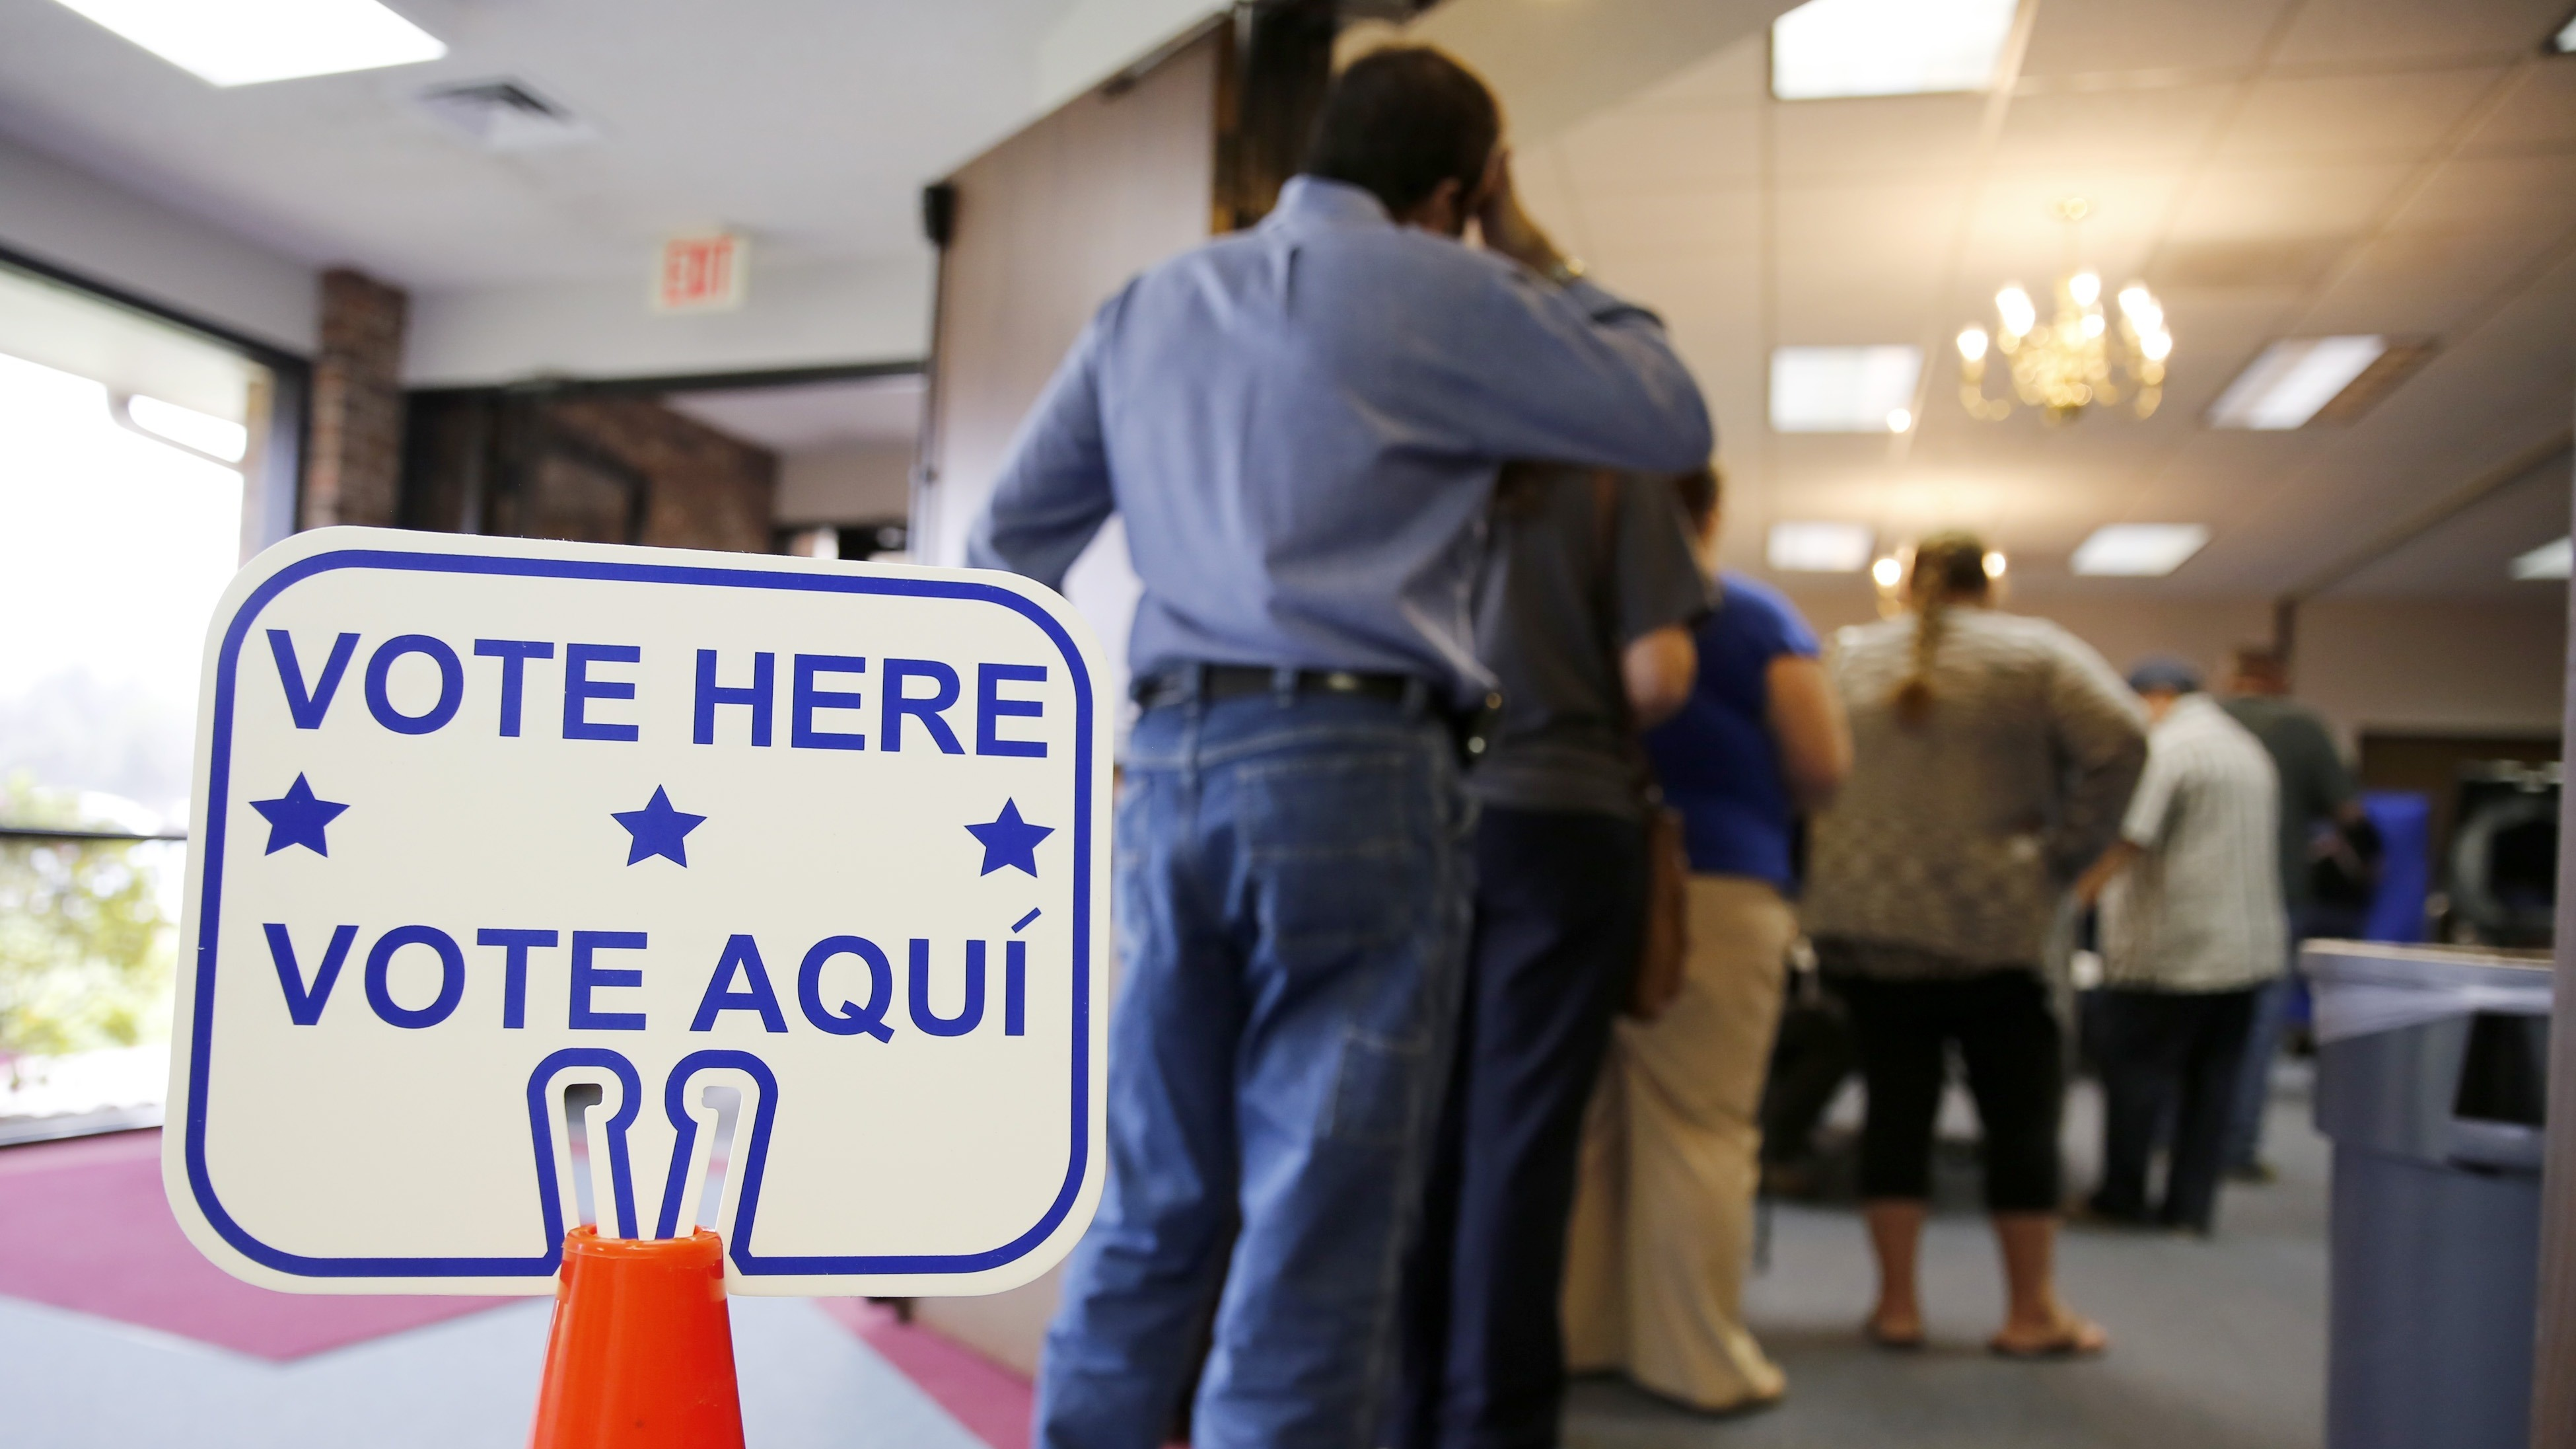 Voters stand in line to cast their ballots inside Calvary Baptist Church in Rosenberg, Texas, on March 1, during the primaries. (Photo by Erich Schlegel/Getty Images)